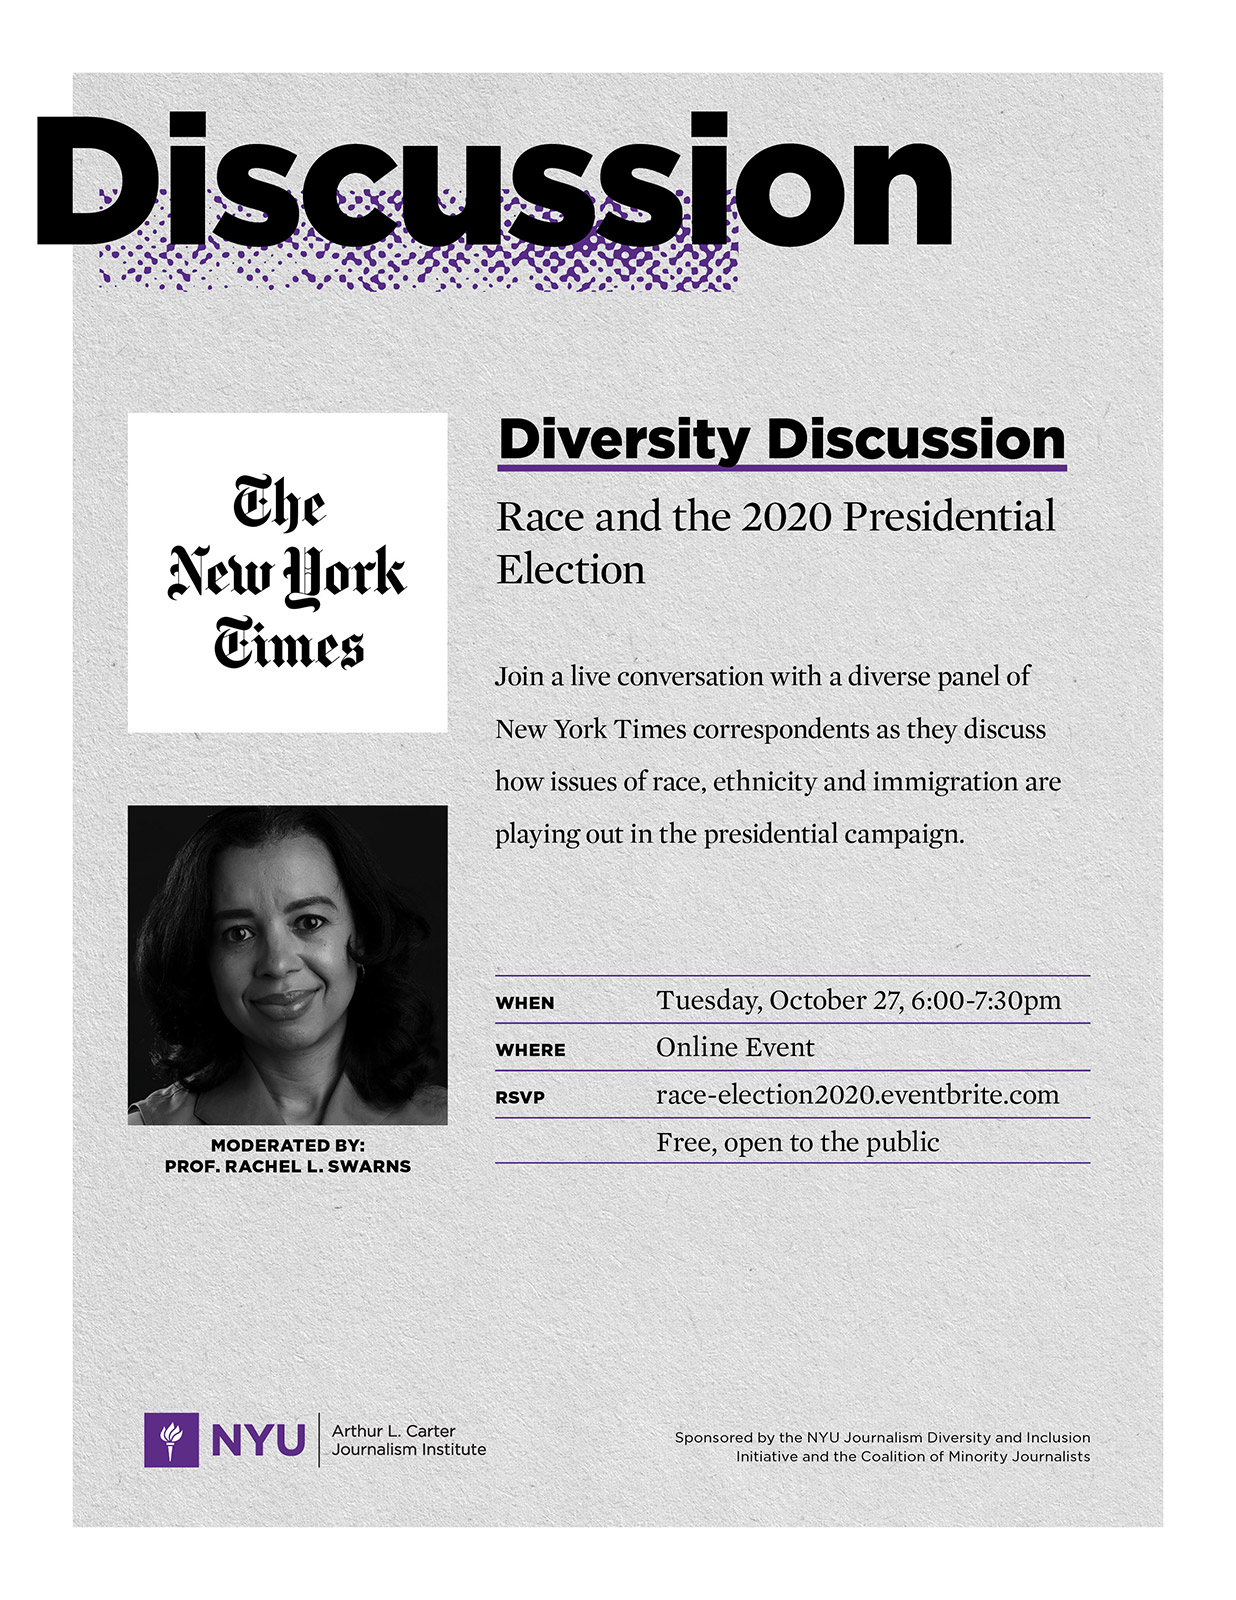 Event Poster - 2020 Fall - Oct 27, 2020 - Diversity Discussion: Race and the 2020 Presidential Election - See event page for details